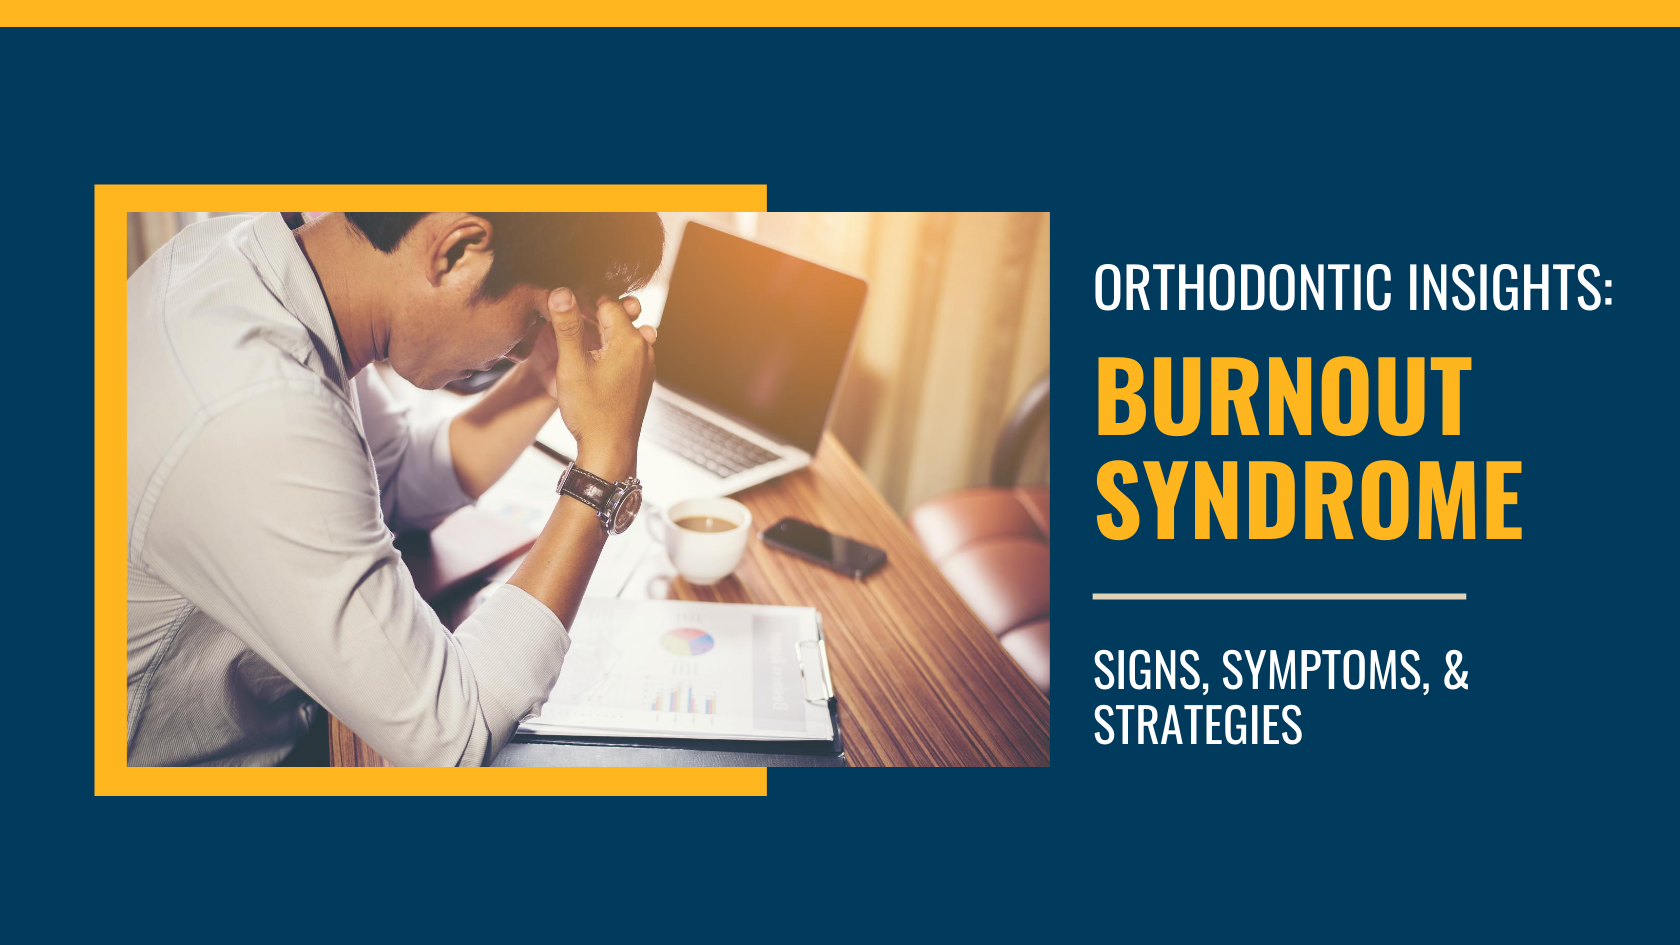 Orthodontist Burnout Syndrome - Signs, Symptoms, & Strategies